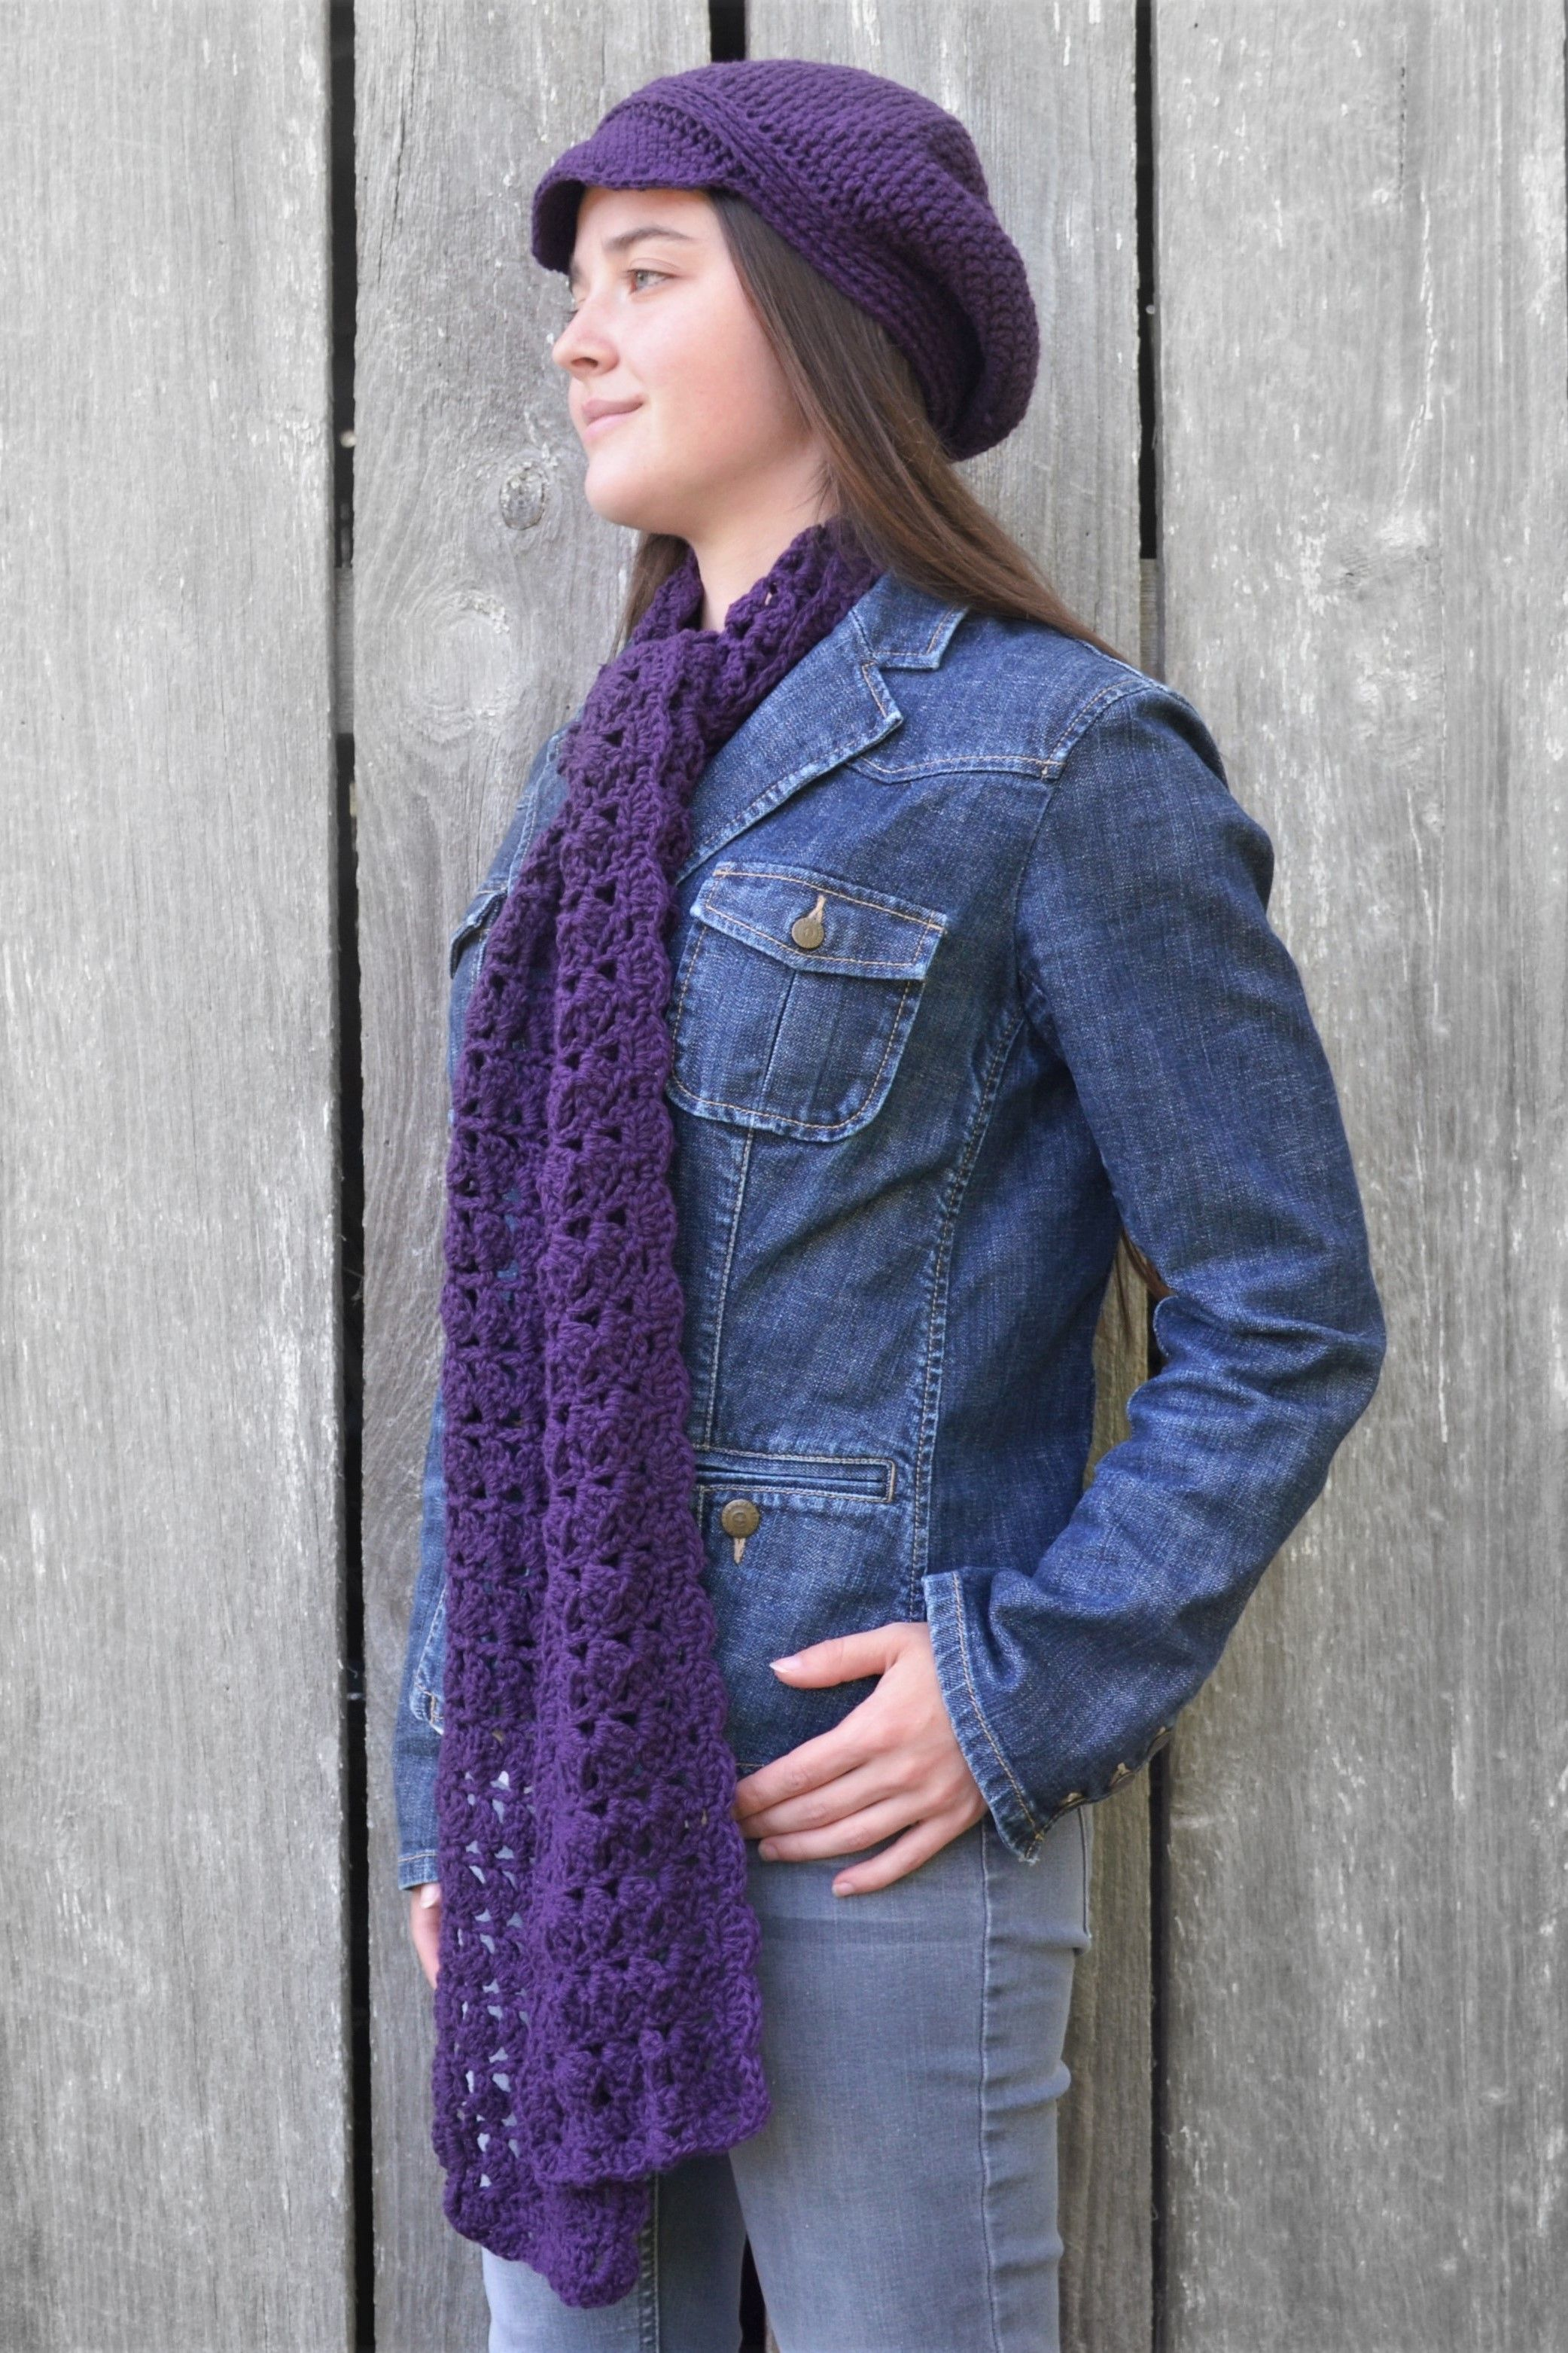 Women's winter scarf and newsboy cap, wool scarf and hat